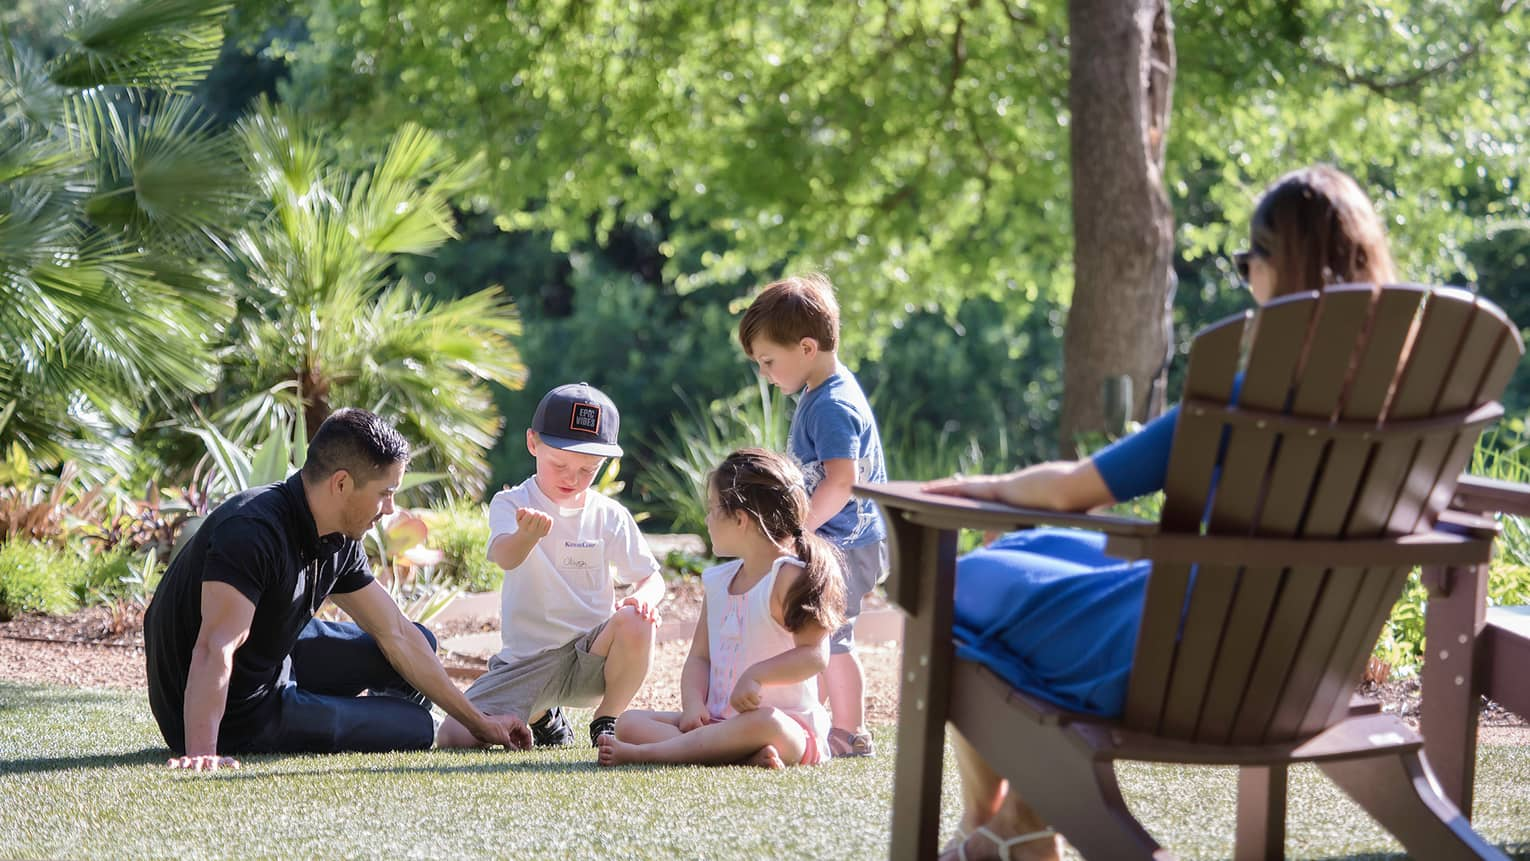 Hotel staff plays game with young children on lawn as woman in deck chair looks on